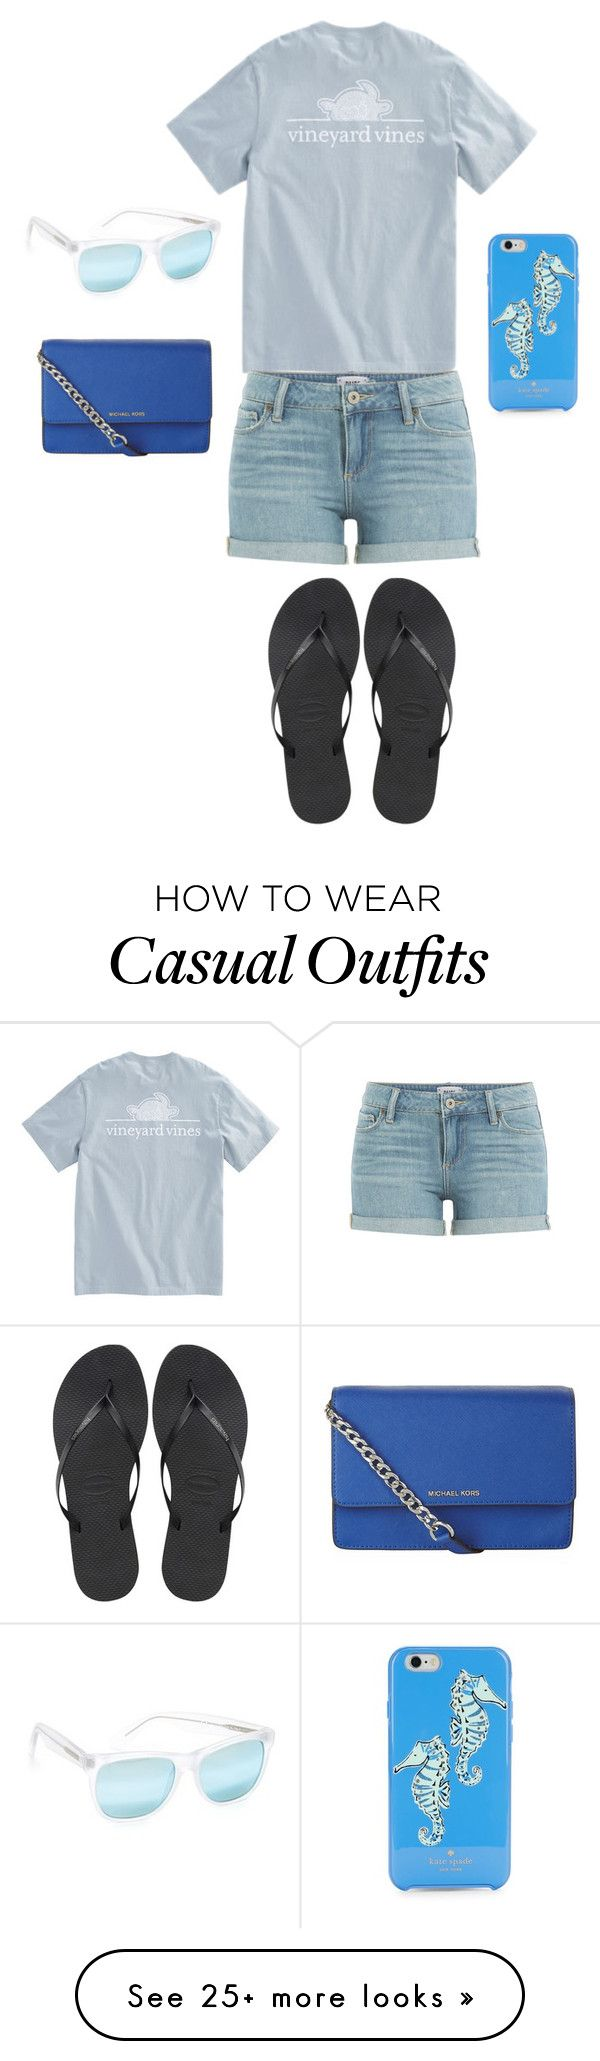 """""""Casual day"""" by tigergirl219 on Polyvore featuring Paige Denim, RetroSuperFuture, Havaianas, MICHAEL Michael Kors and Kate Spade"""